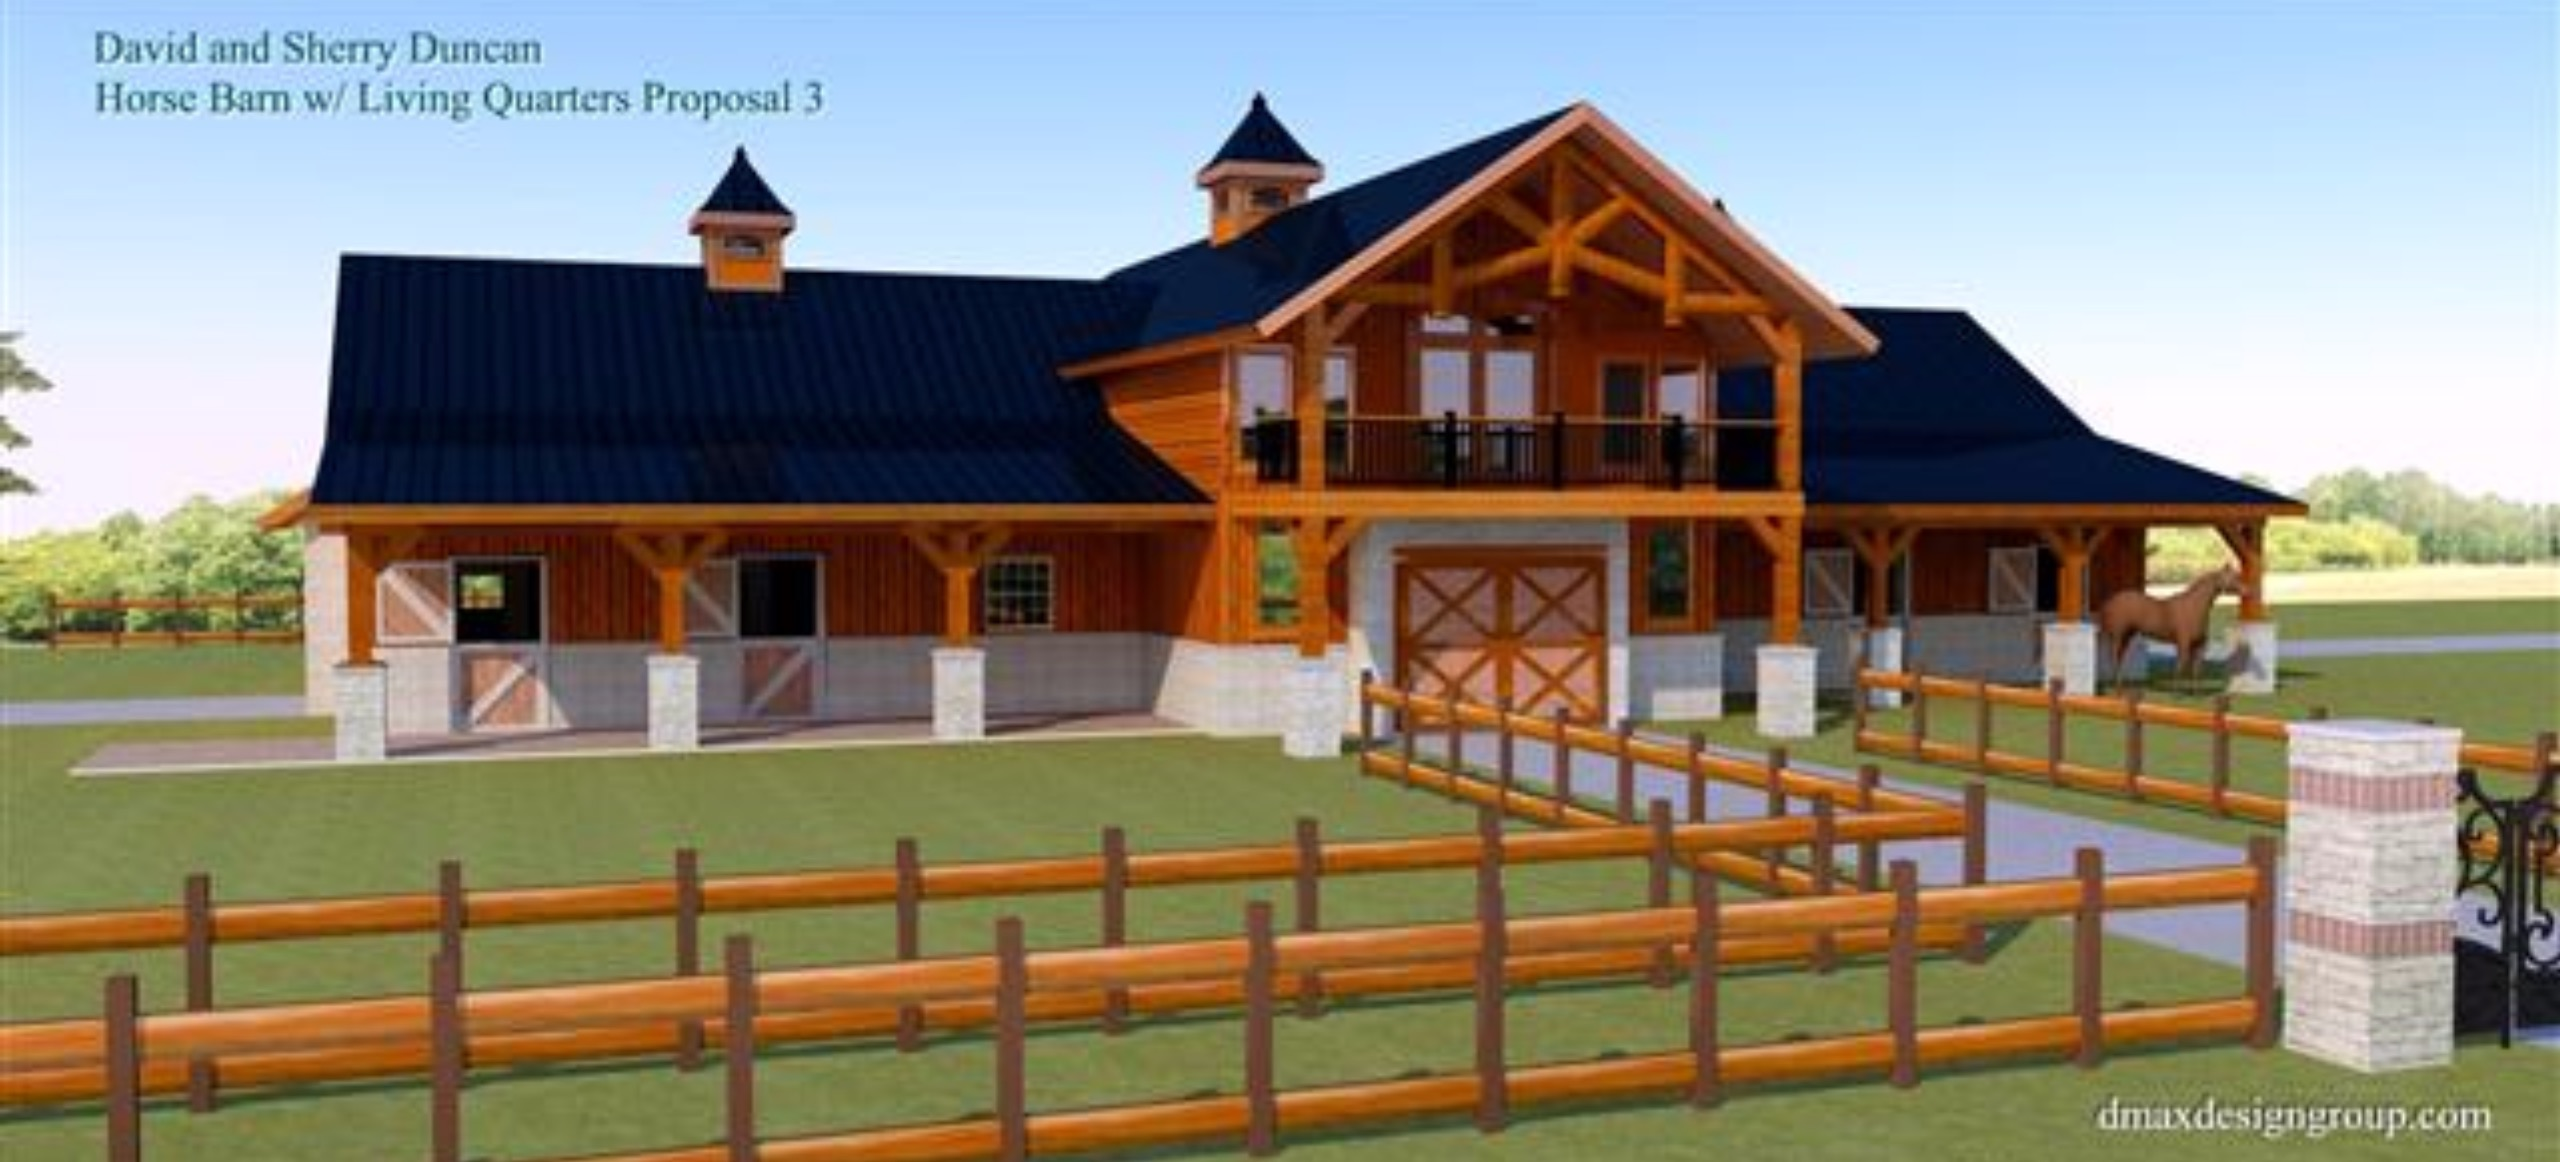 Barns and buildings quality barns and buildings horse for Barn construction designs